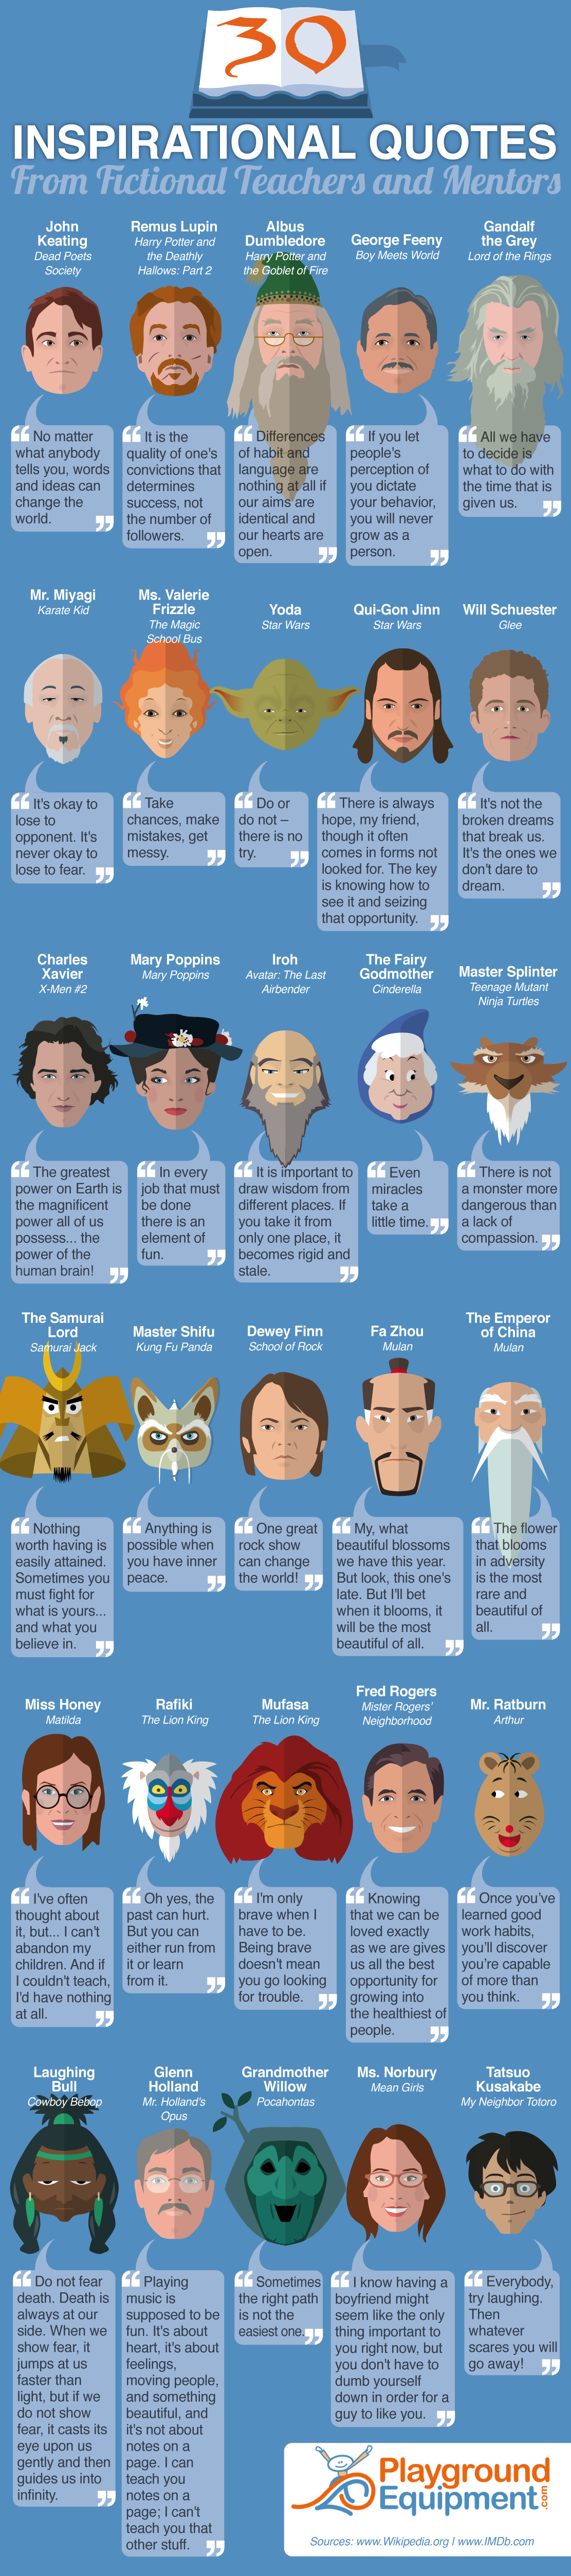 30-Inspirational-Quotes-from-Fictional-Teachers-and-Mentors-Infographic